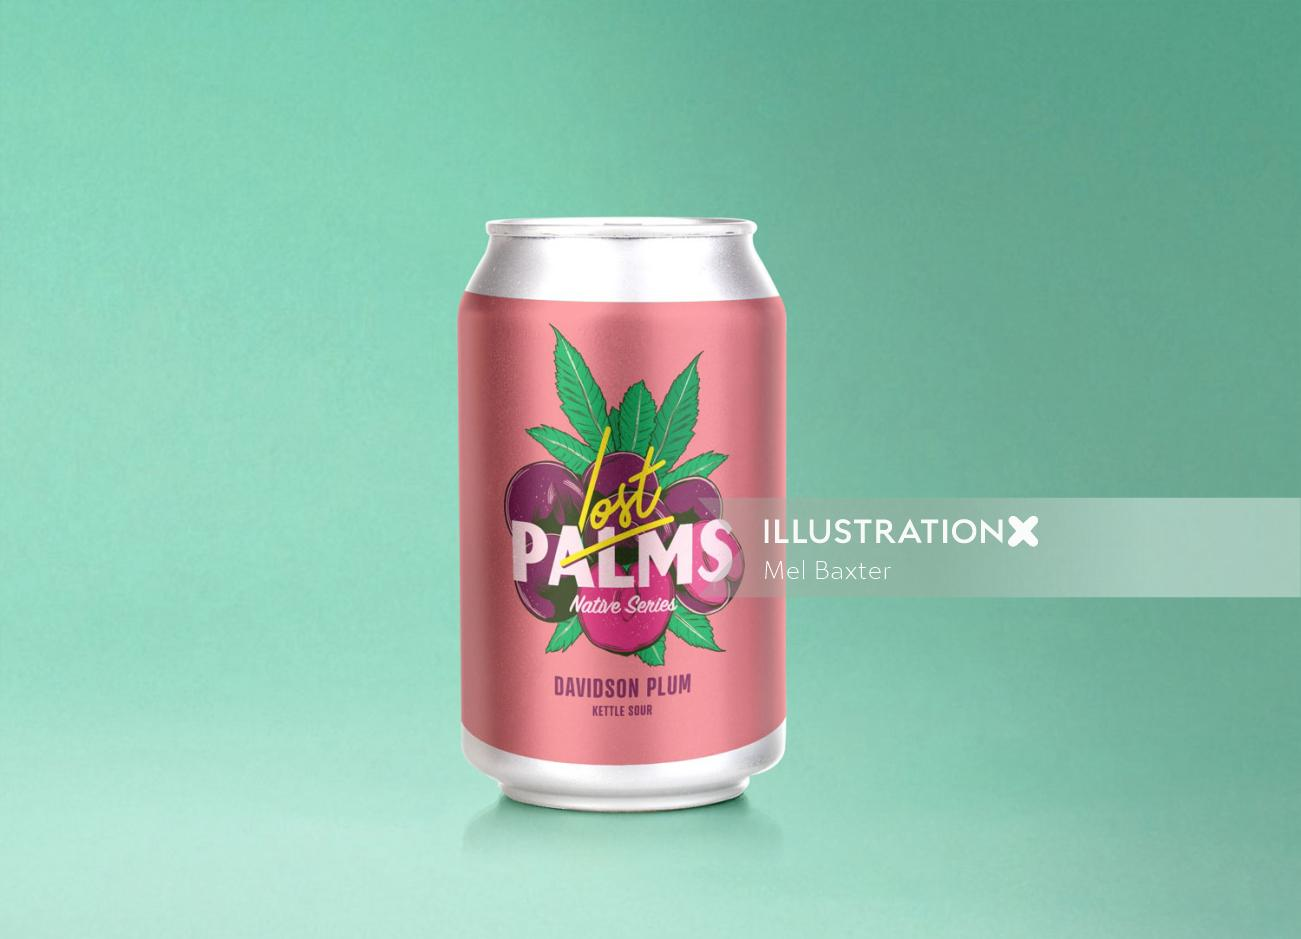 Lost palms davidson plum series package artworks